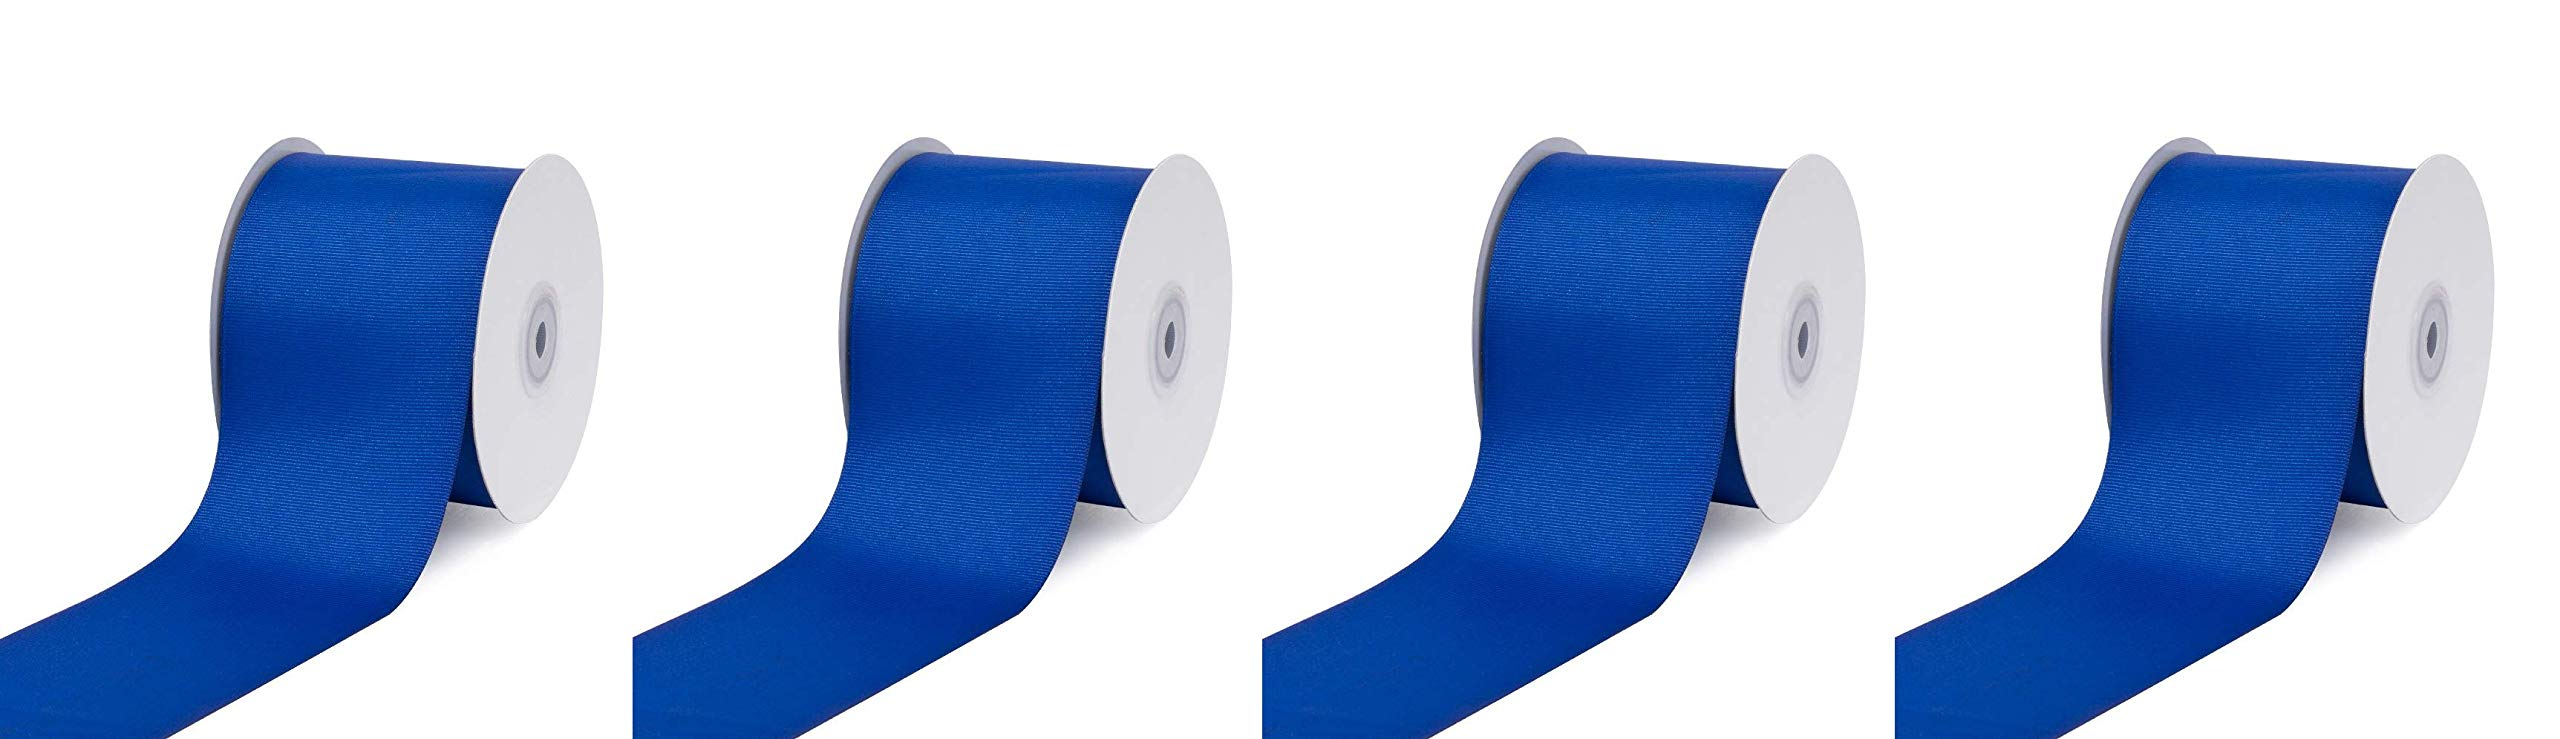 Creative Ideas 3'' Inch Solid Grosgrain Ribbon, 25 Yards, Royal Blue, 25 yd (Fоur Paсk)